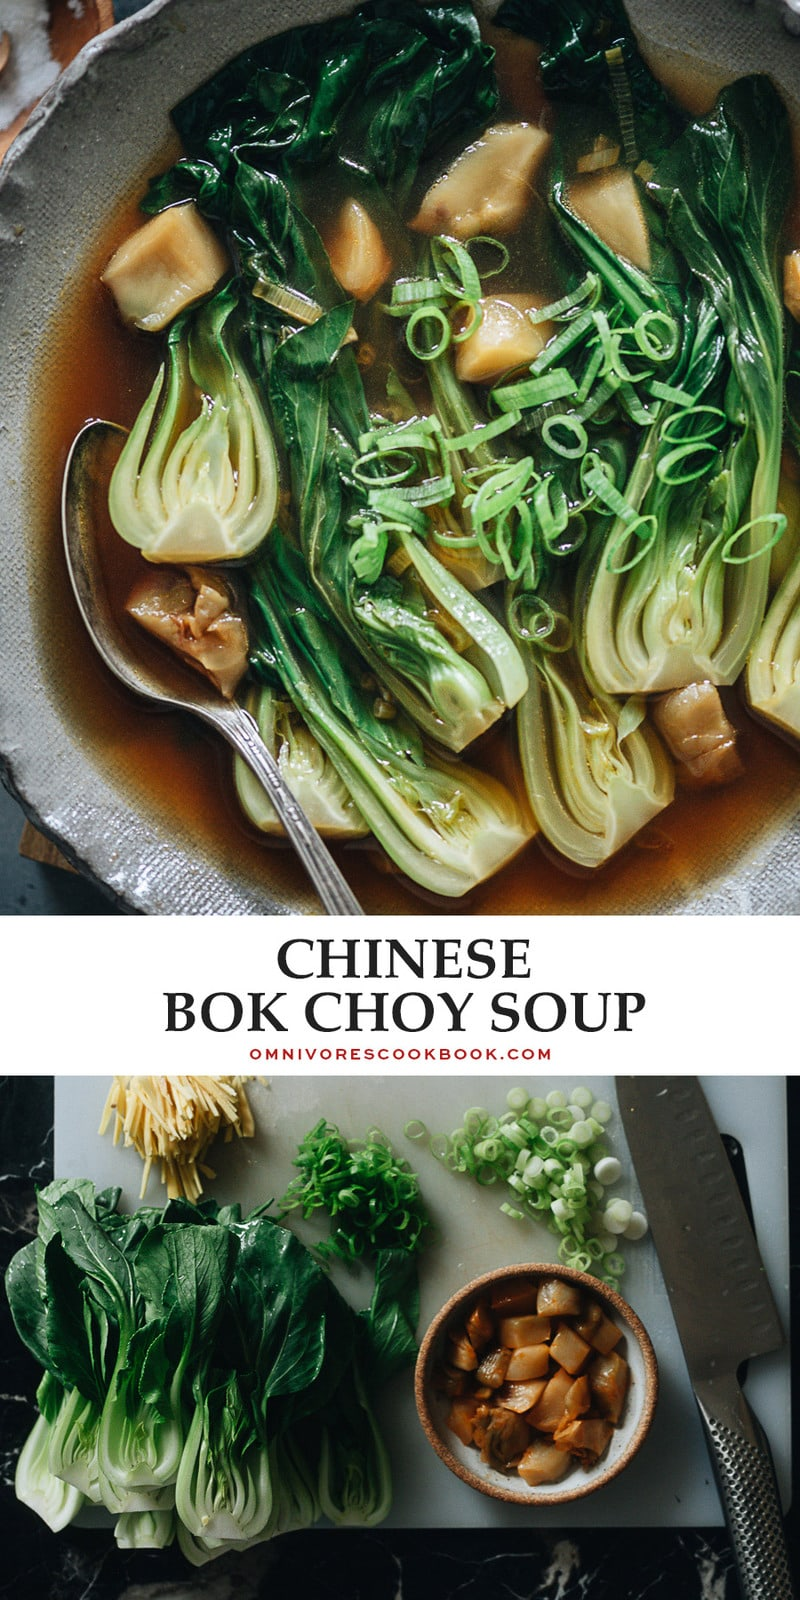 Try this truly Chinese-style bok choy soup for a uniquely savory and flavorful way to enjoy more vegetables with your dinner. {Gluten-Free, Vegan}